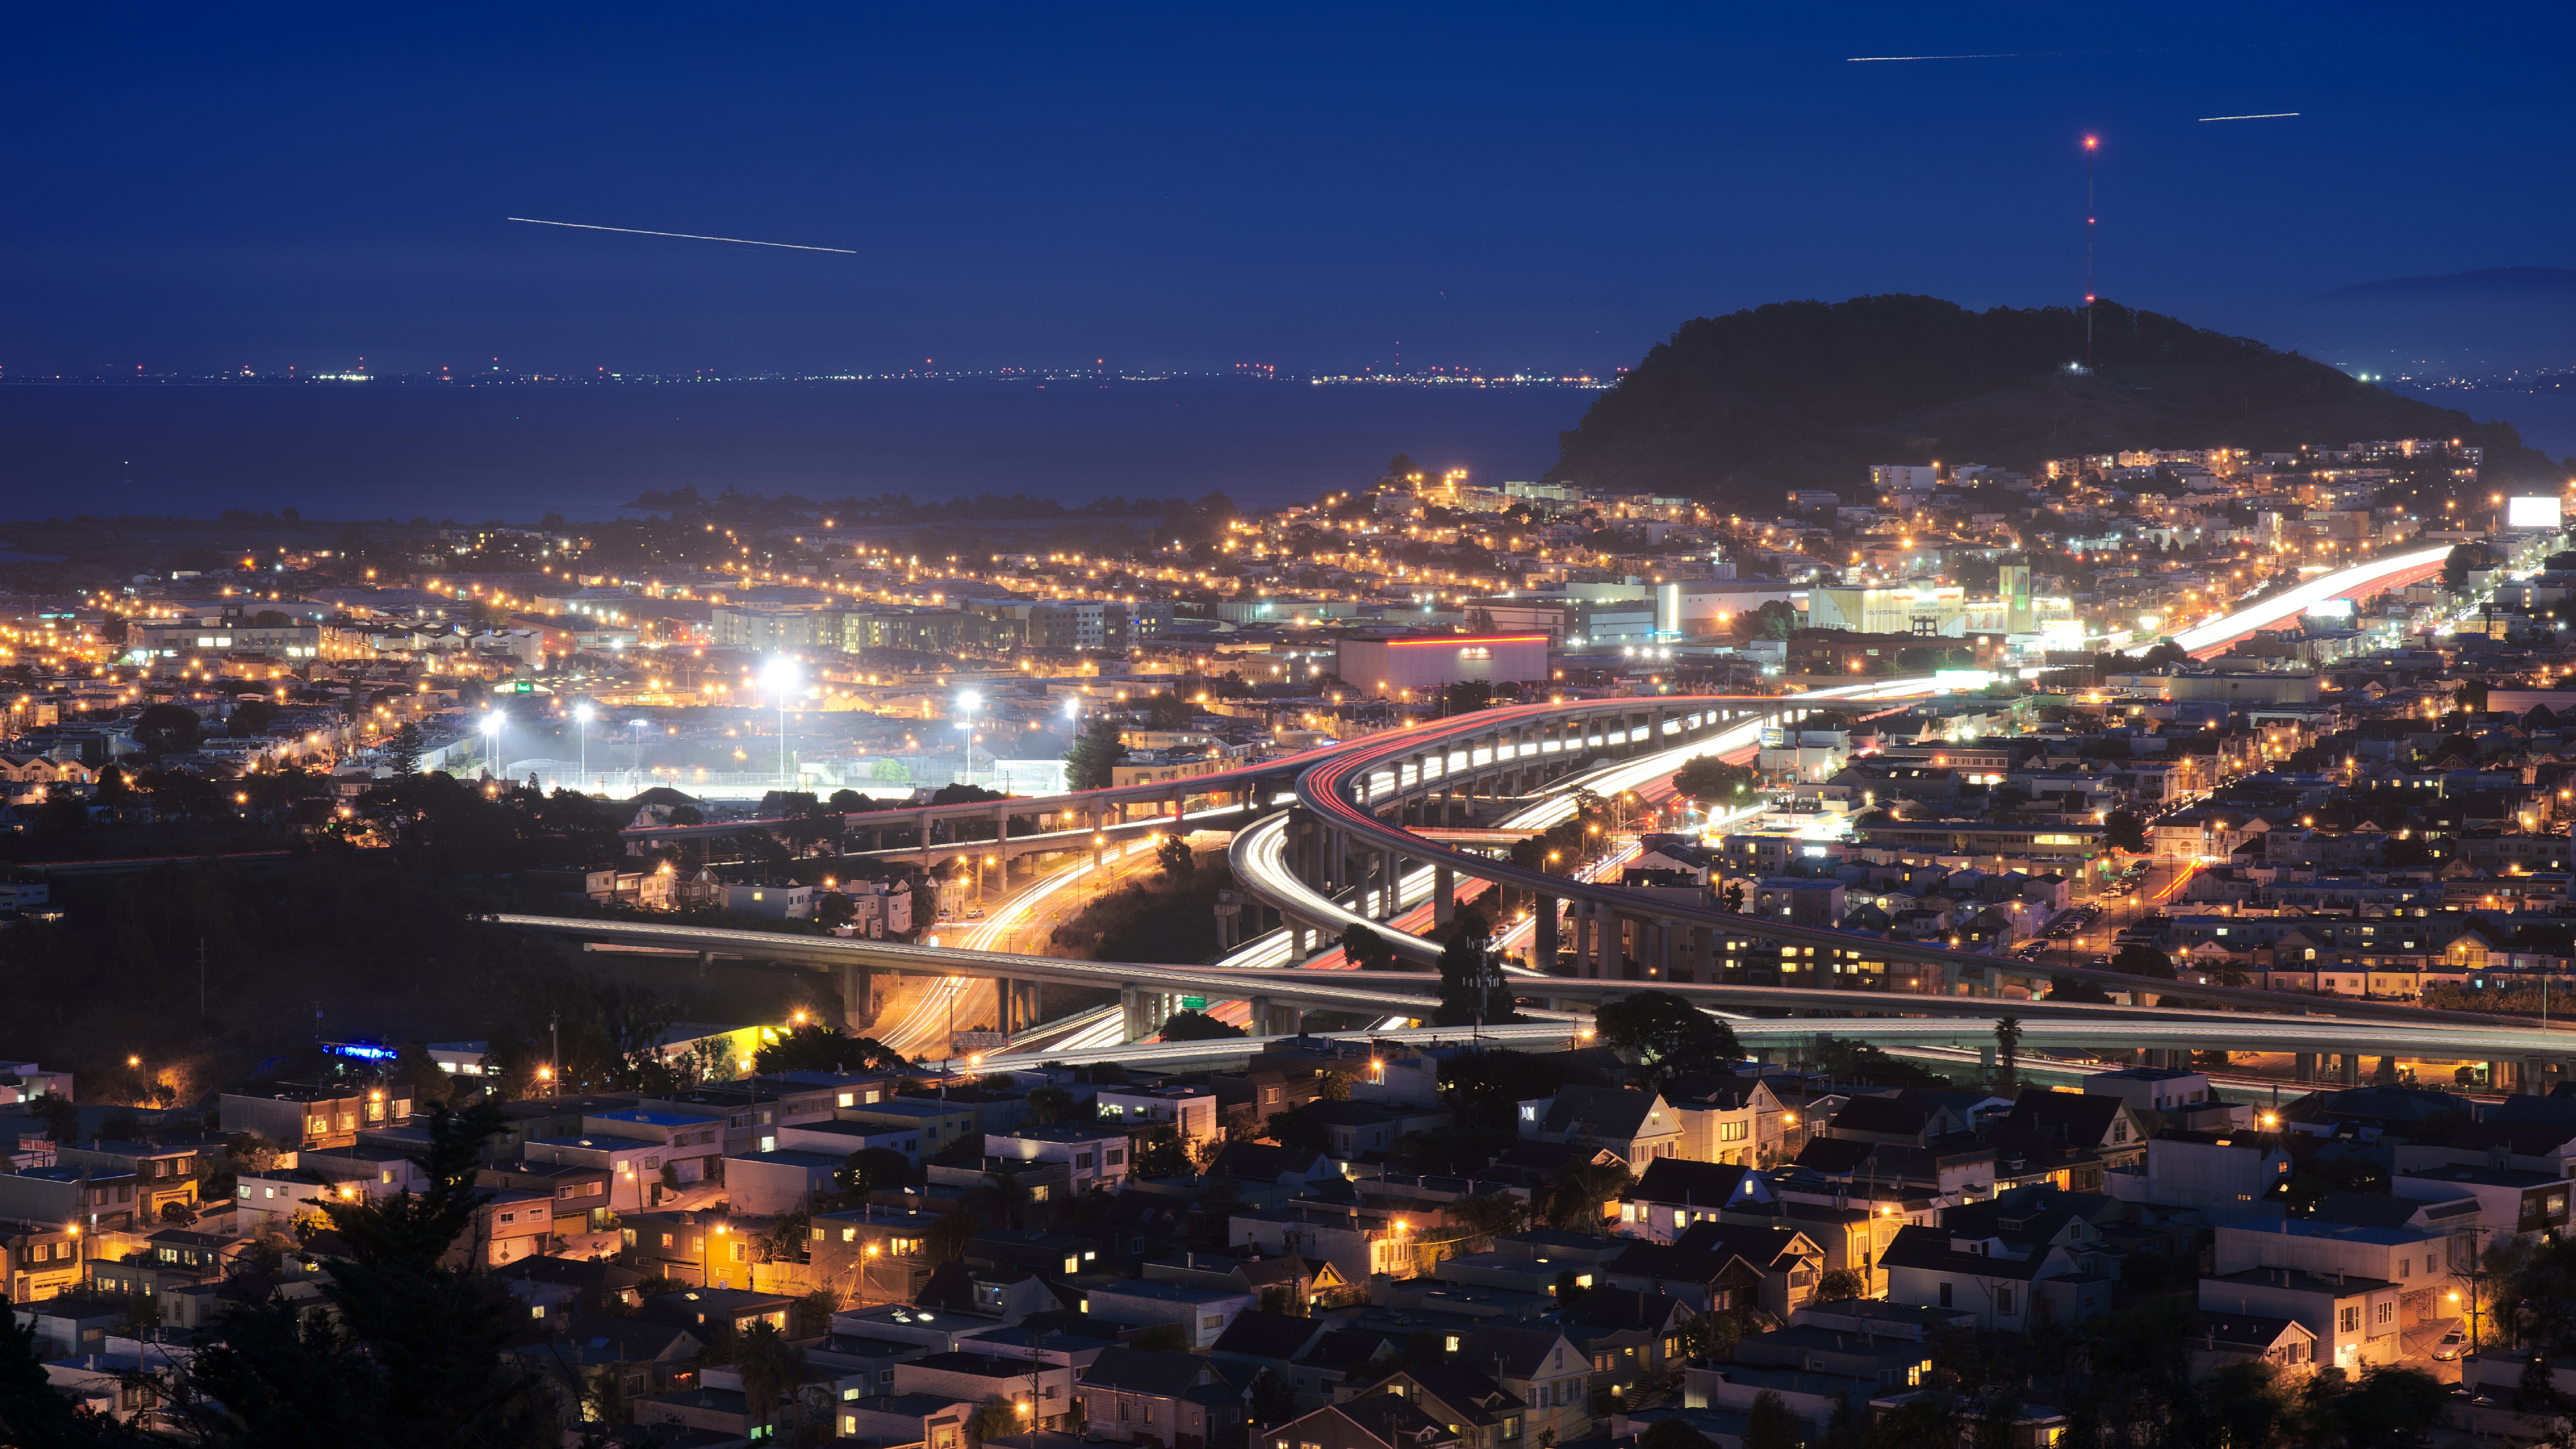 US Route 101 & Interstate 280 in San Francisco wallpaper